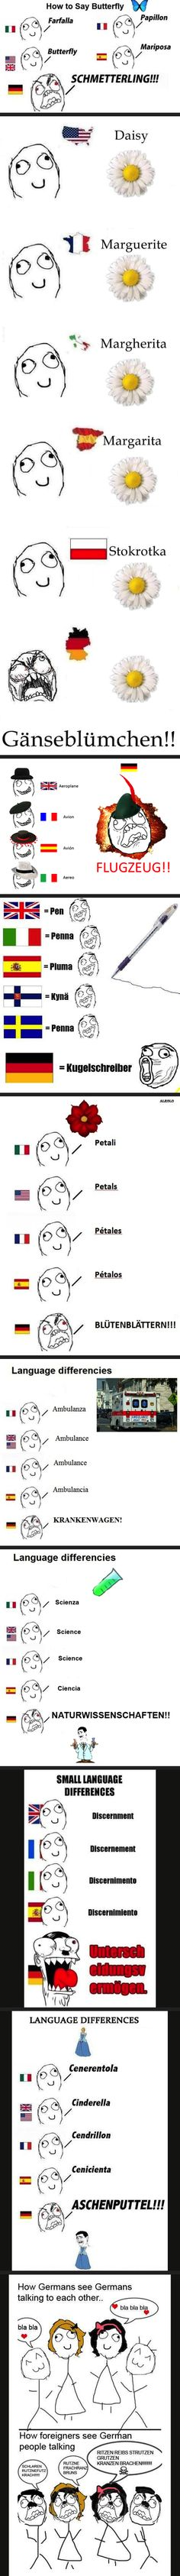 I tried to read the german parts without shouting. I was unsuccessful.